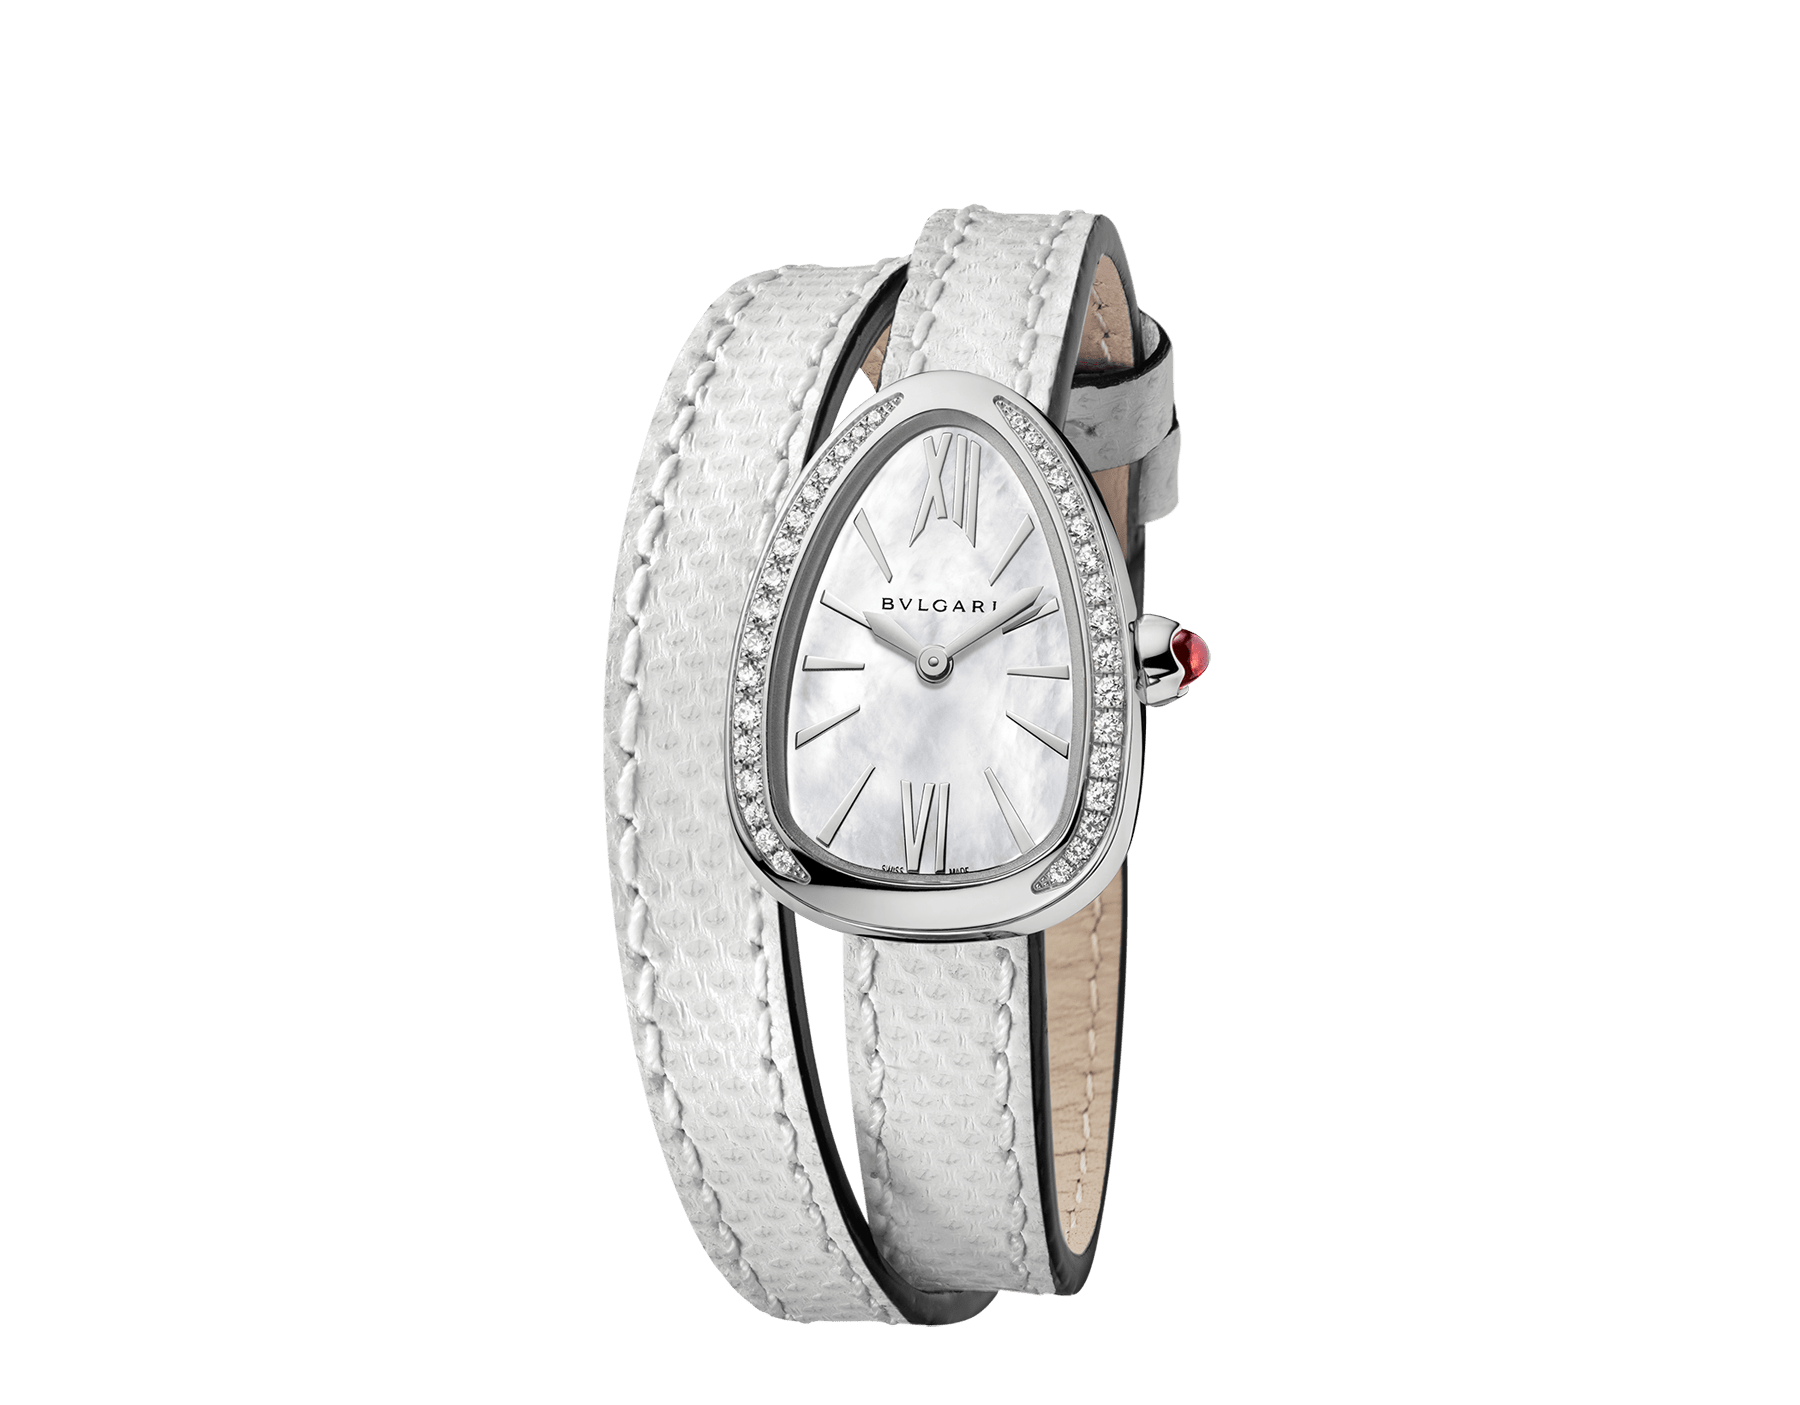 Serpenti watch with stainless steel case set with diamonds, white mother-of-pearl dial and interchangeable double spiral bracelet in white karung leather. 102781 image 2